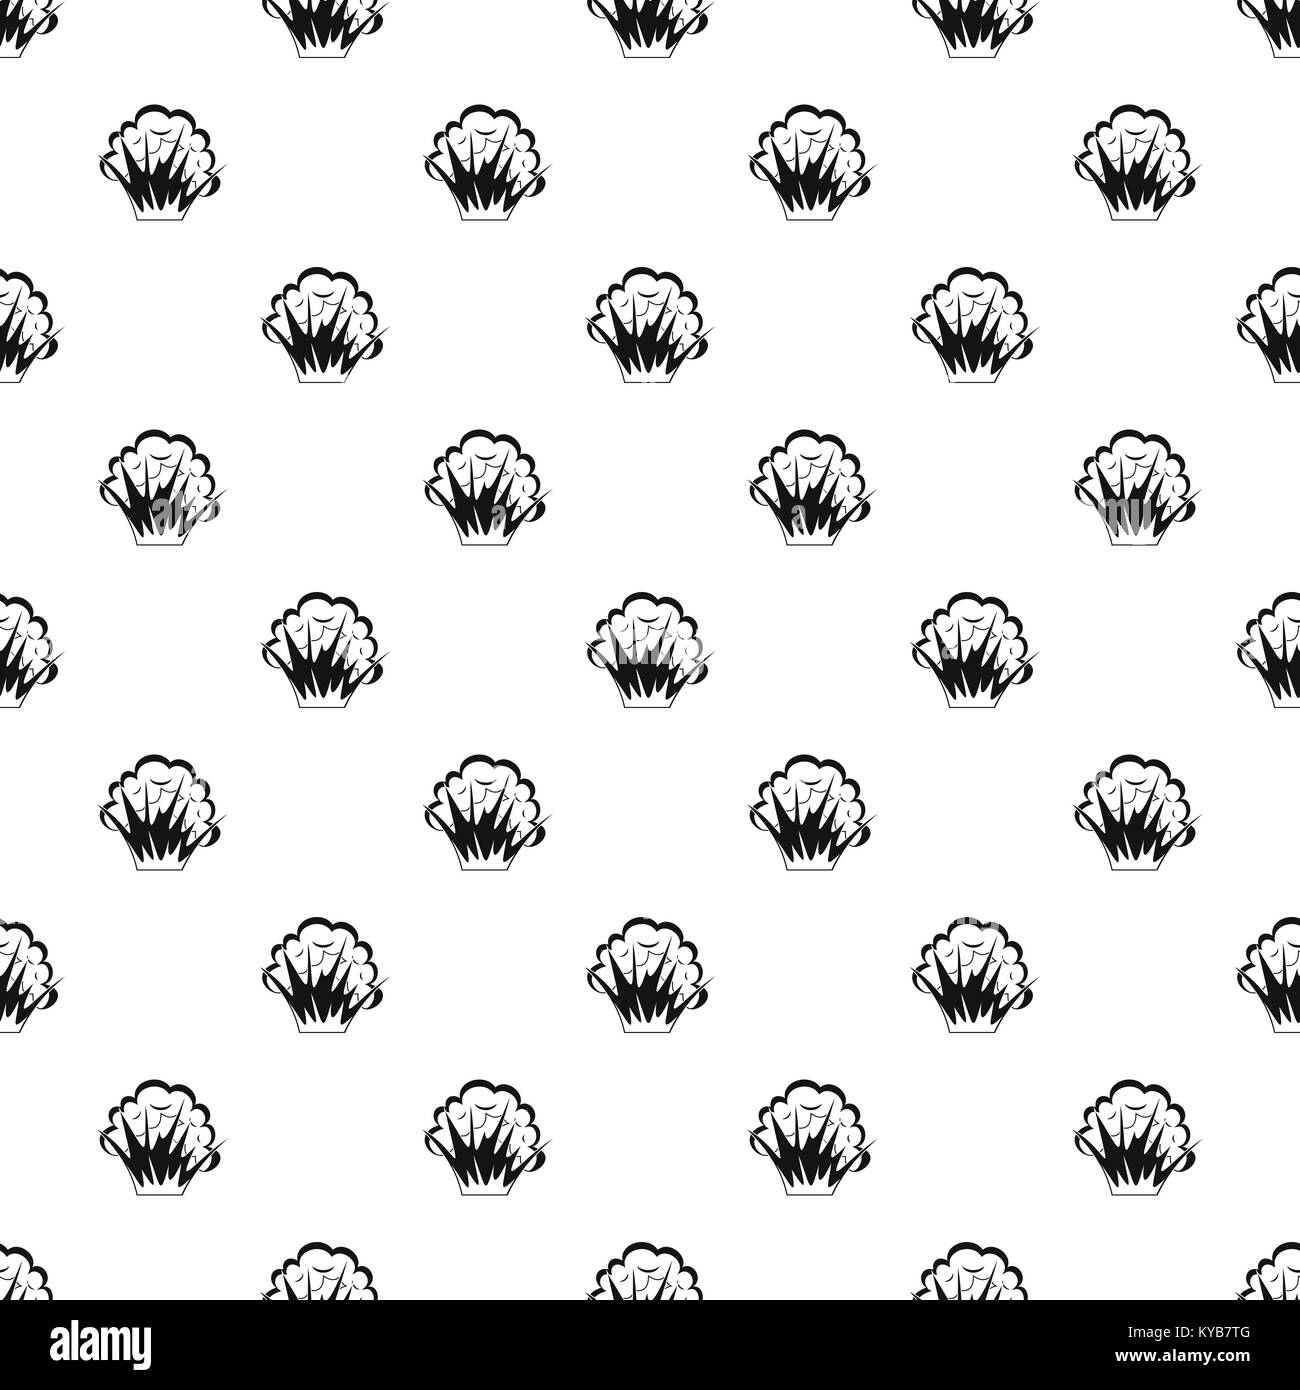 Nuclear explosion pattern vector - Stock Image